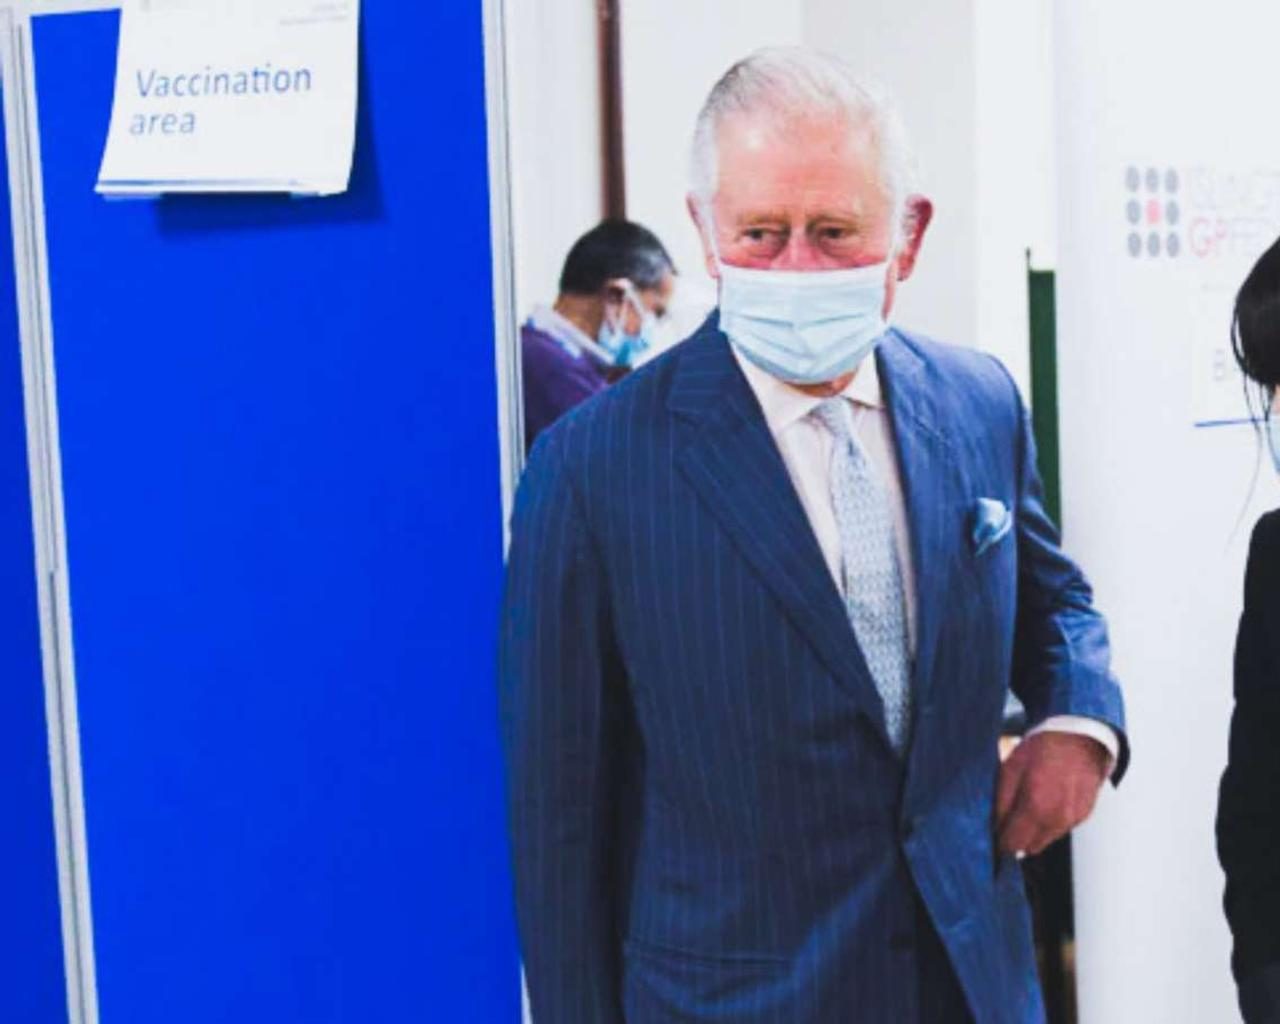 Covid vaccines can protect and set free: Britain's Prince Charles.